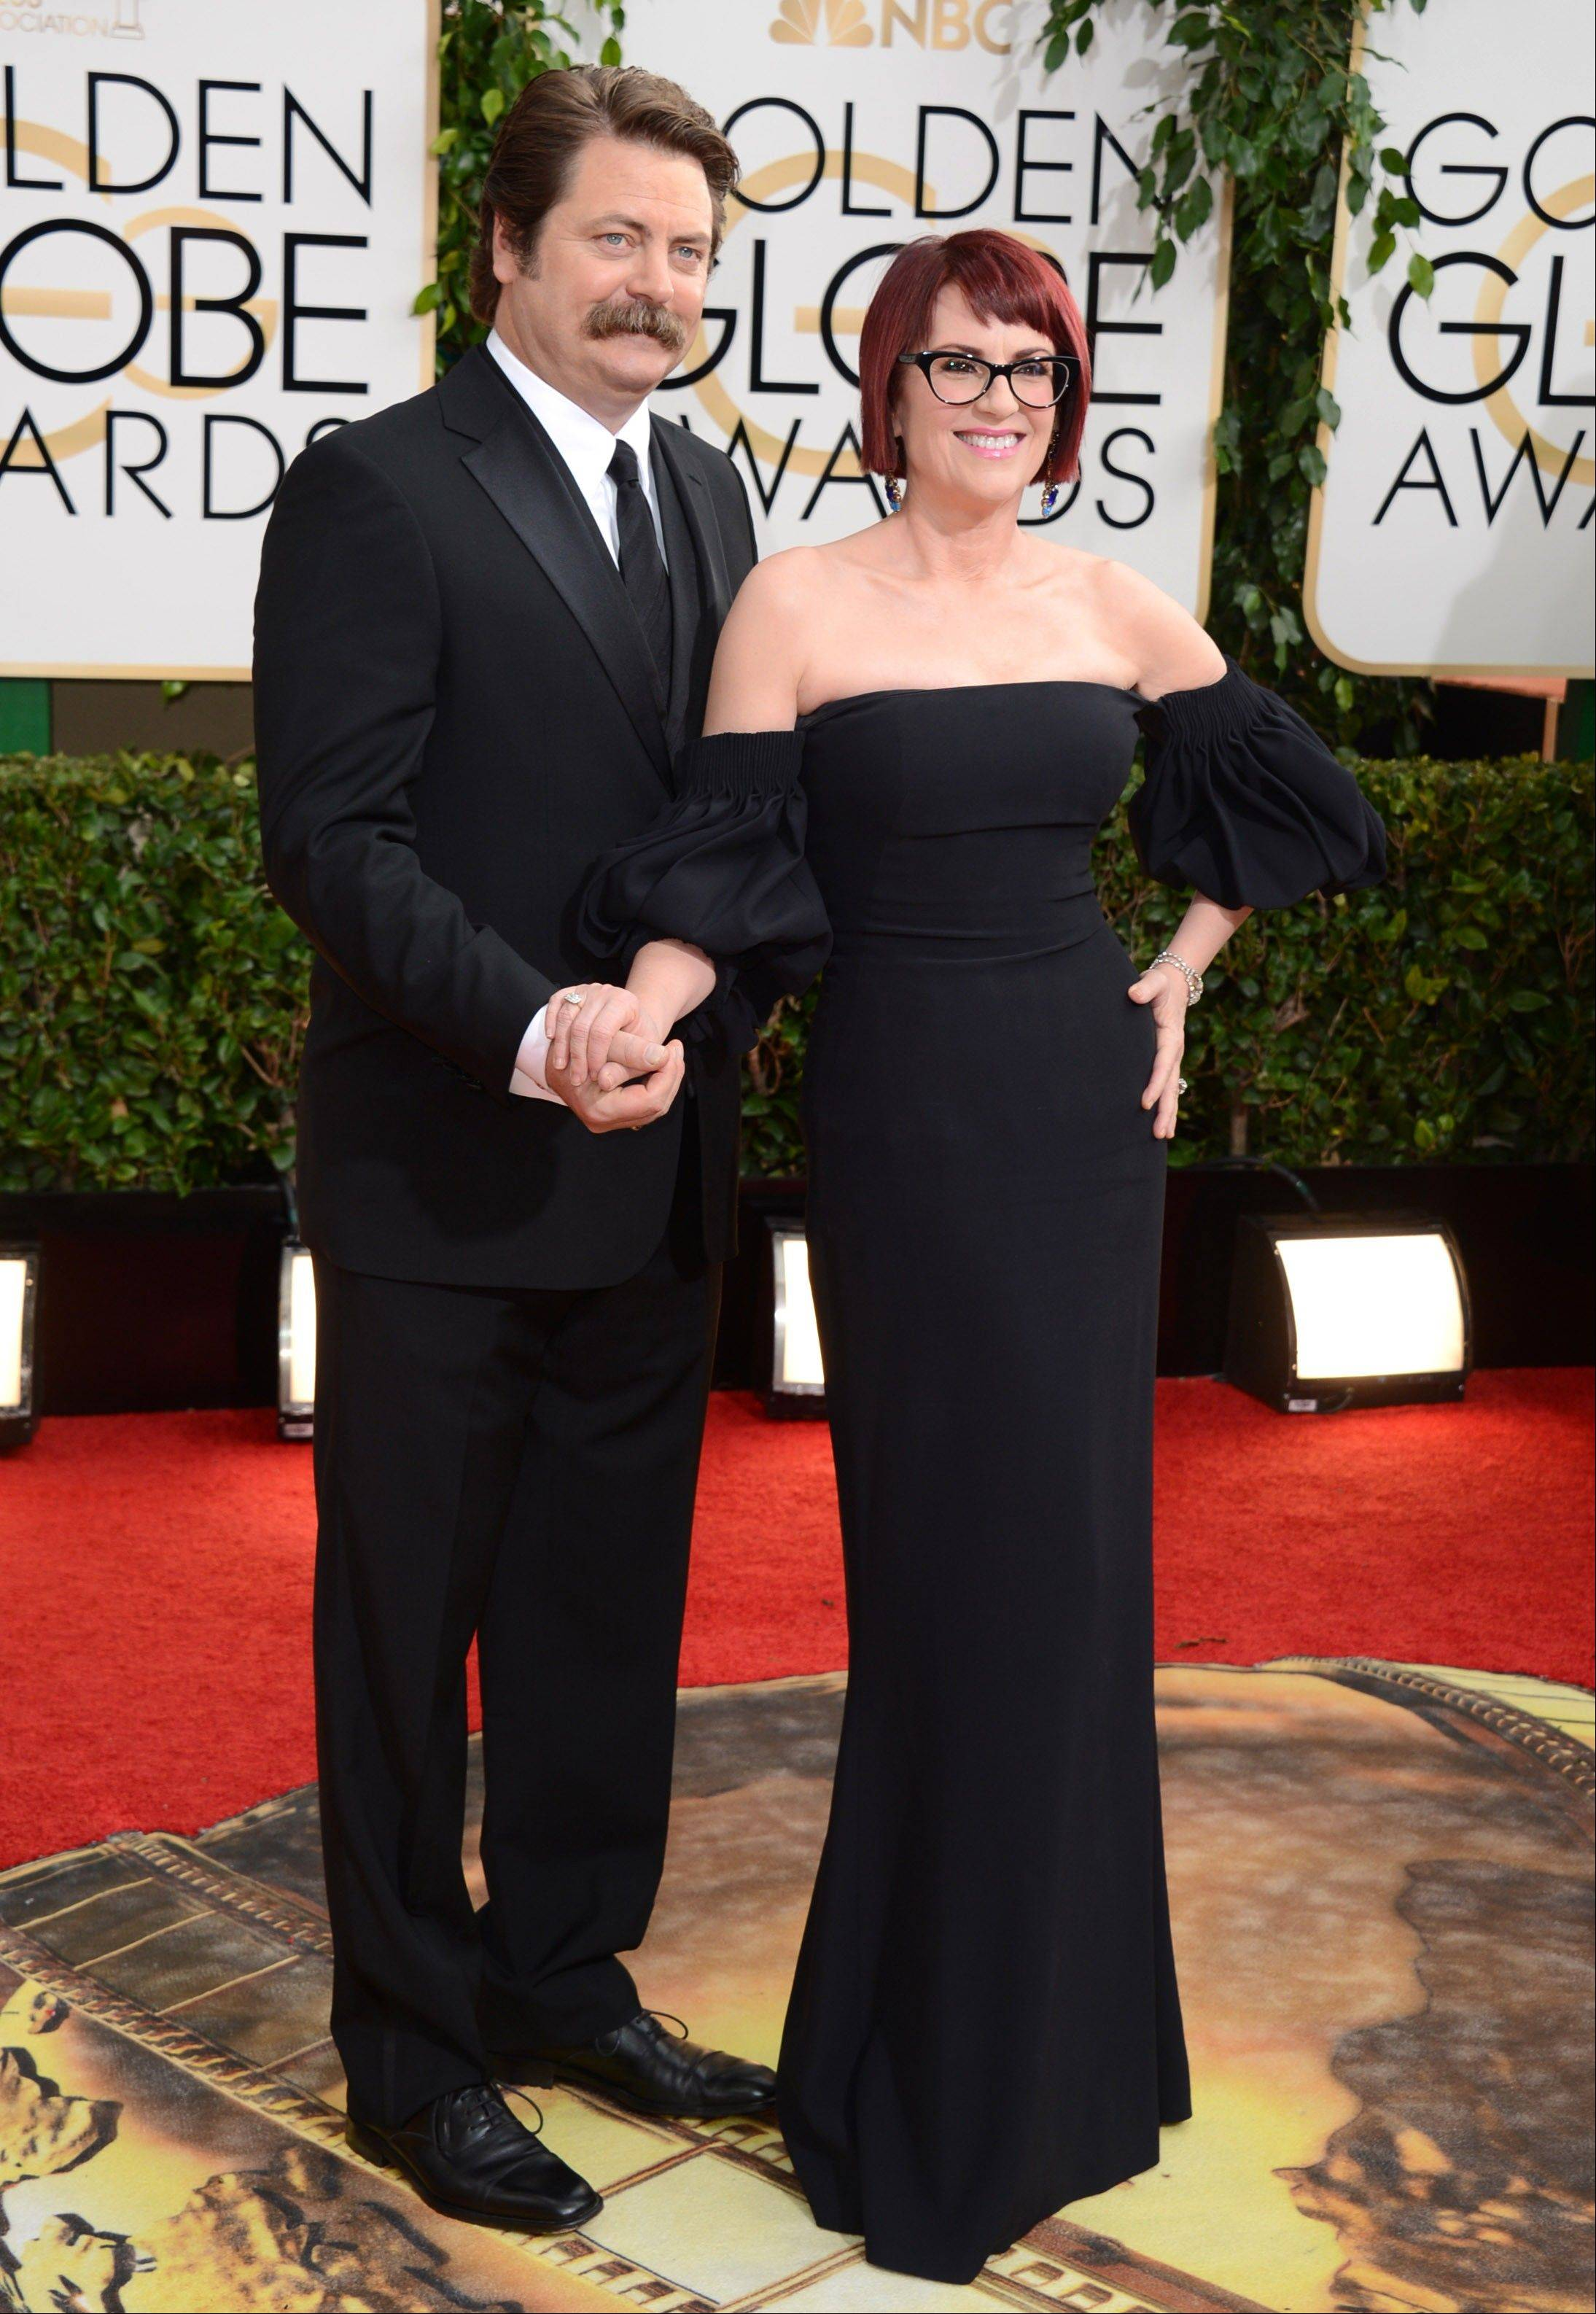 """Parks and Rec"" star Nick Offerman walked the carpet with his wife, actress Megan Mullally."